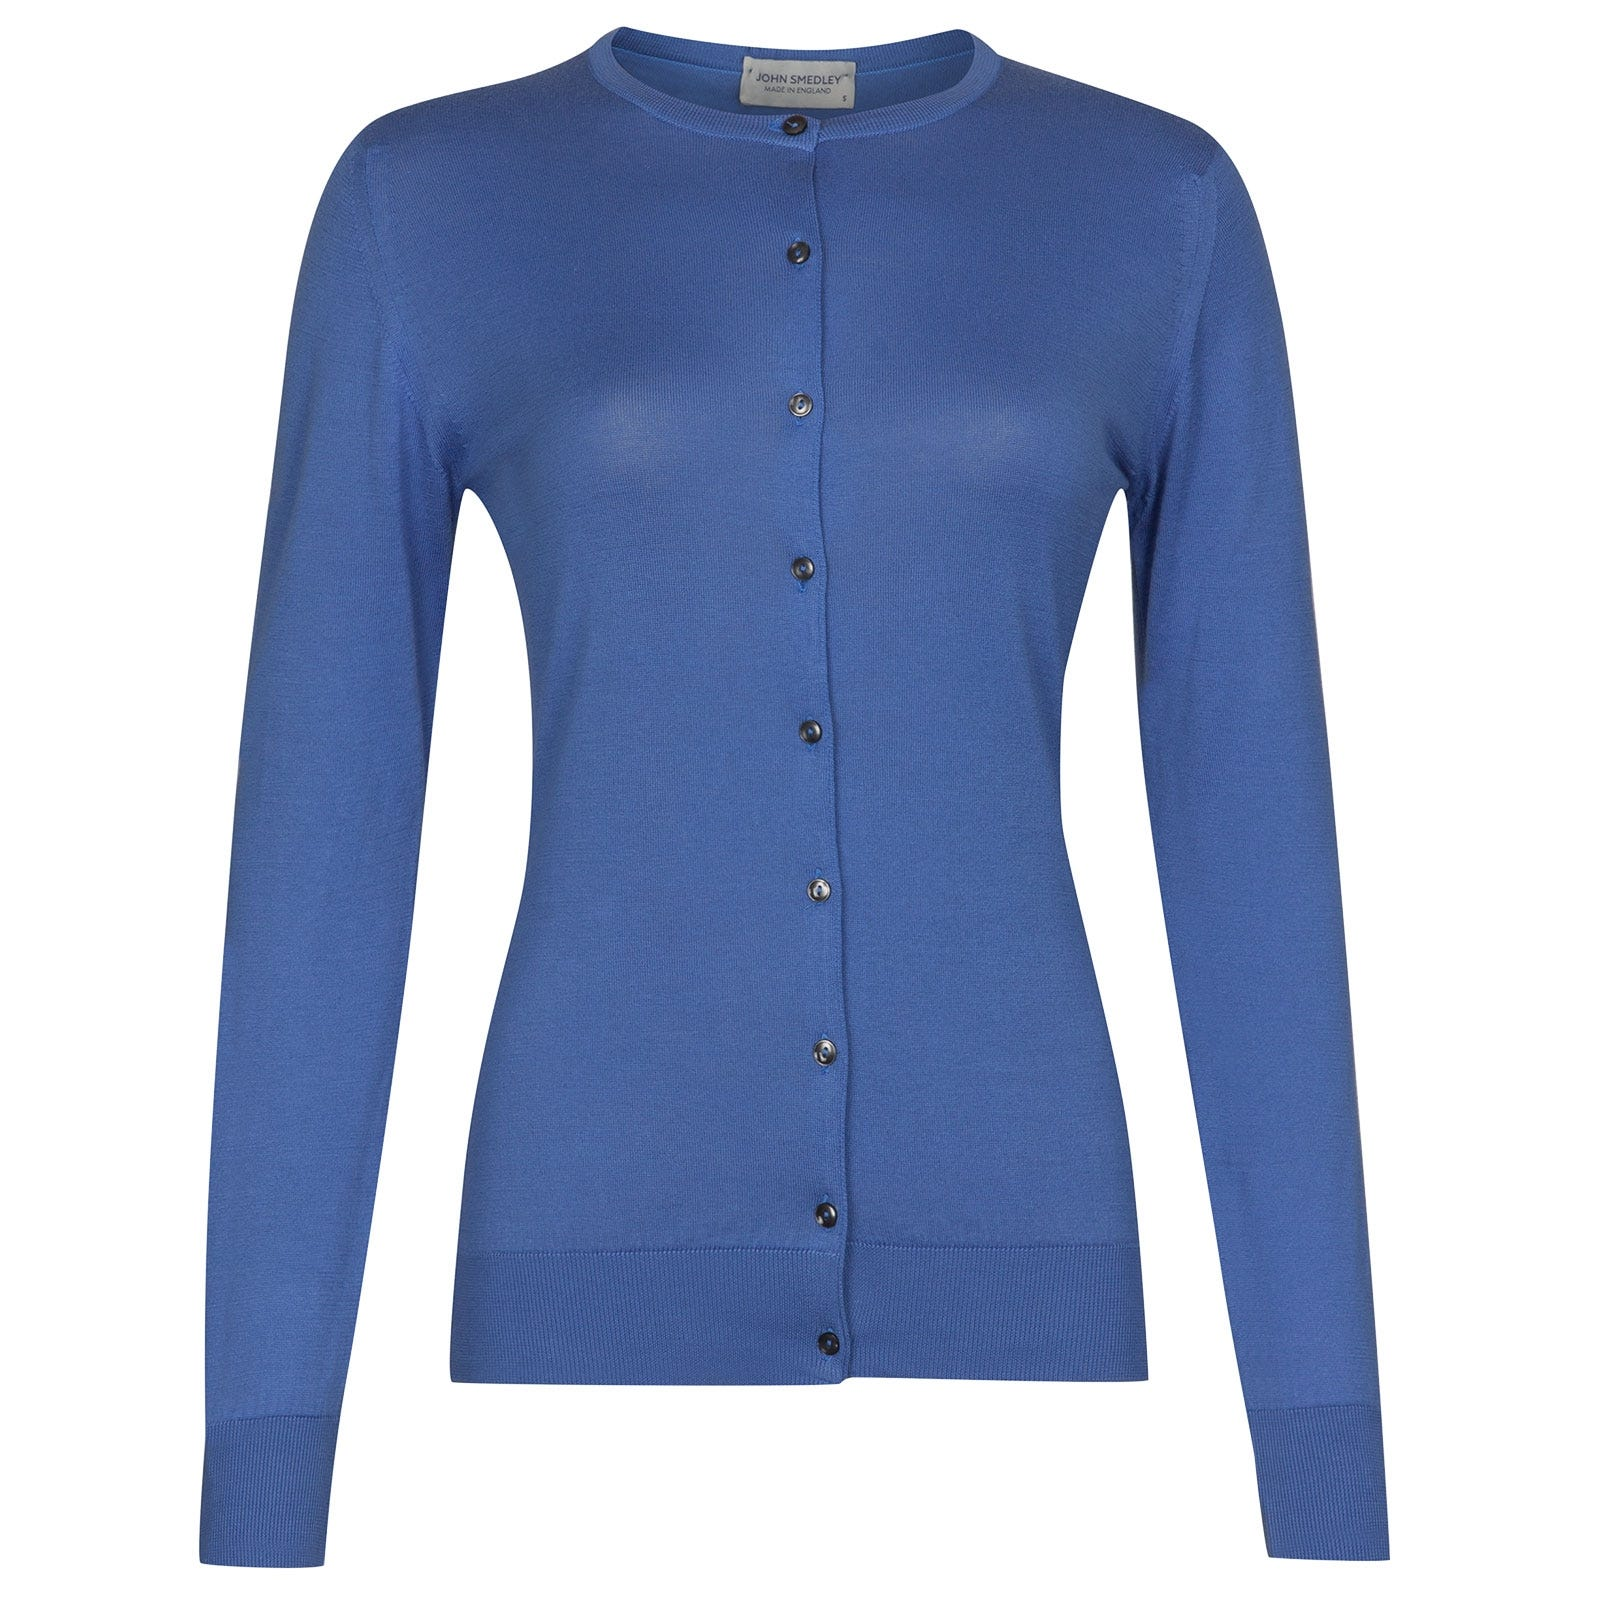 Islington-Chambray-blue-M